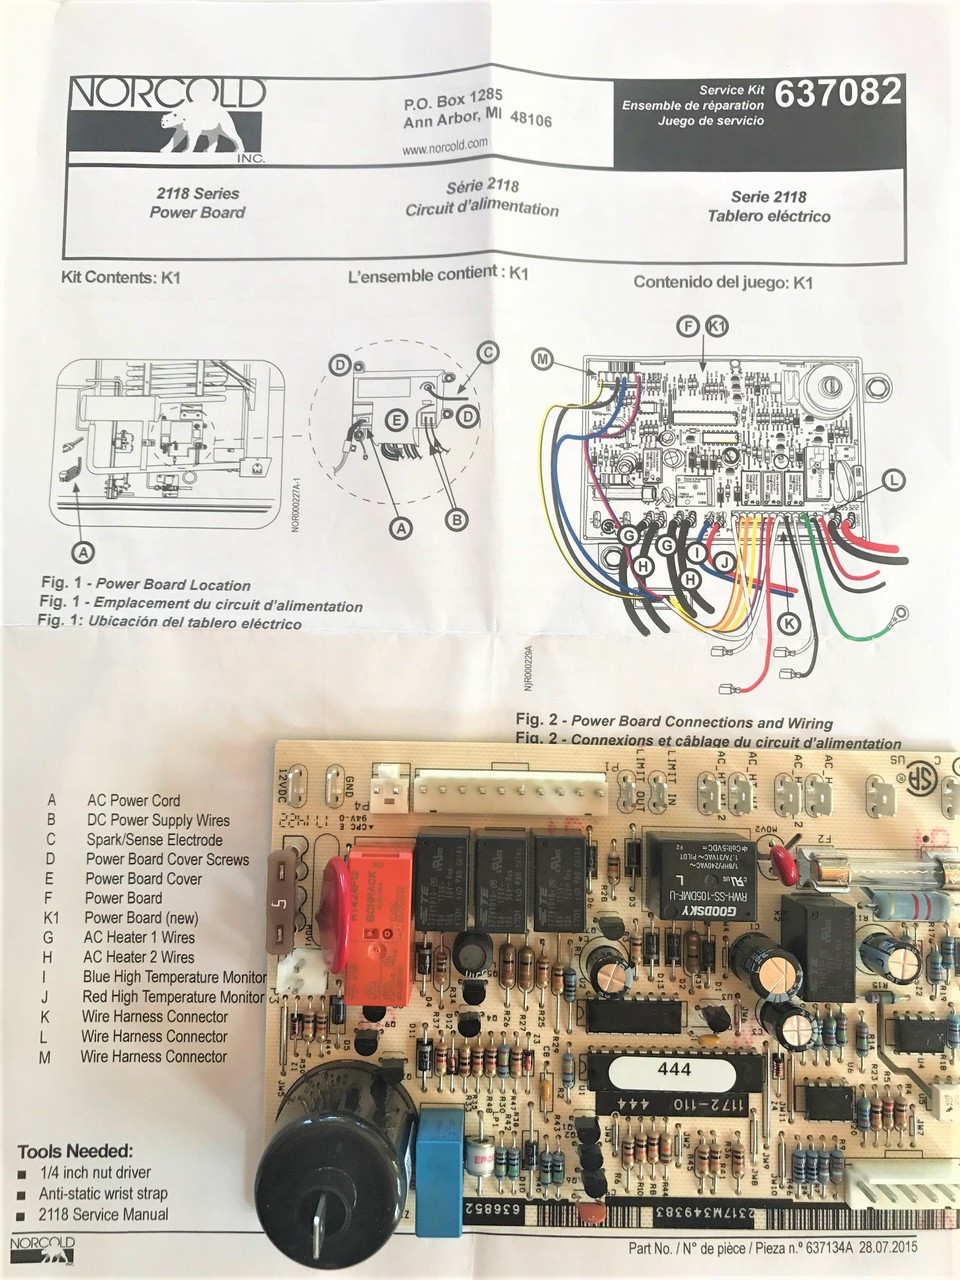 IMG_0059_2__66296.1504279223.1280.1280?c\=2 norcold fridge wiring diagram best wiring library